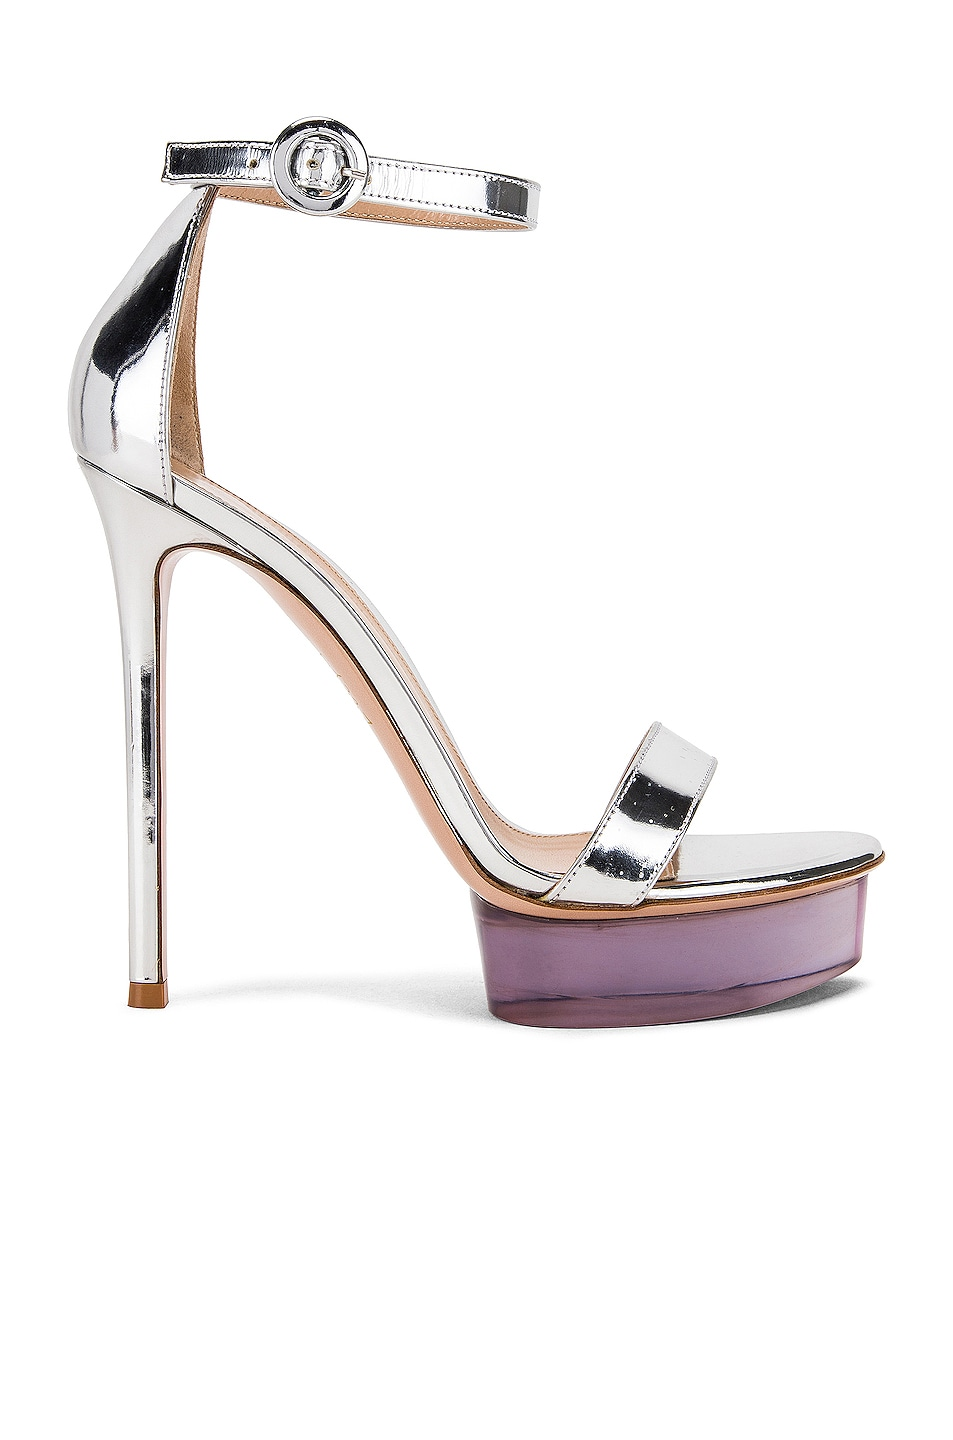 Image 1 of Gianvito Rossi Ankle Strap Platform Heels in Silver